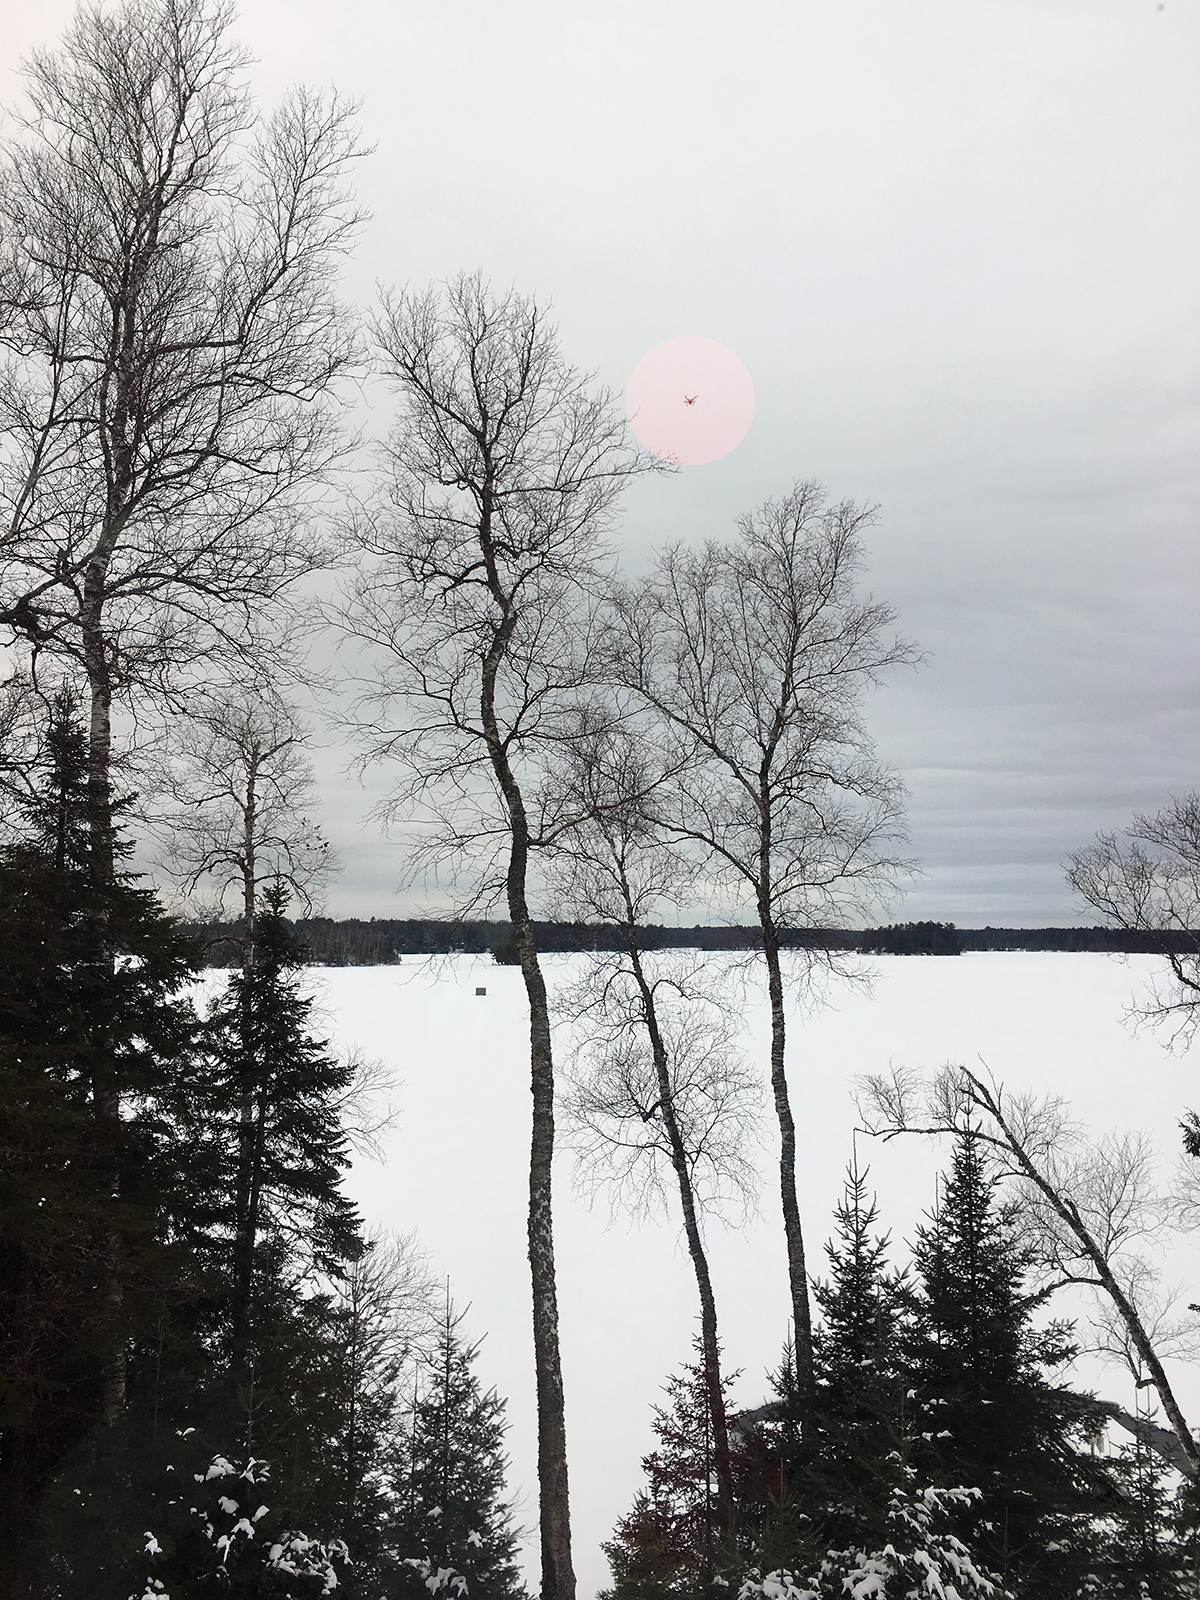 Looking out towards the lake - look for the drone